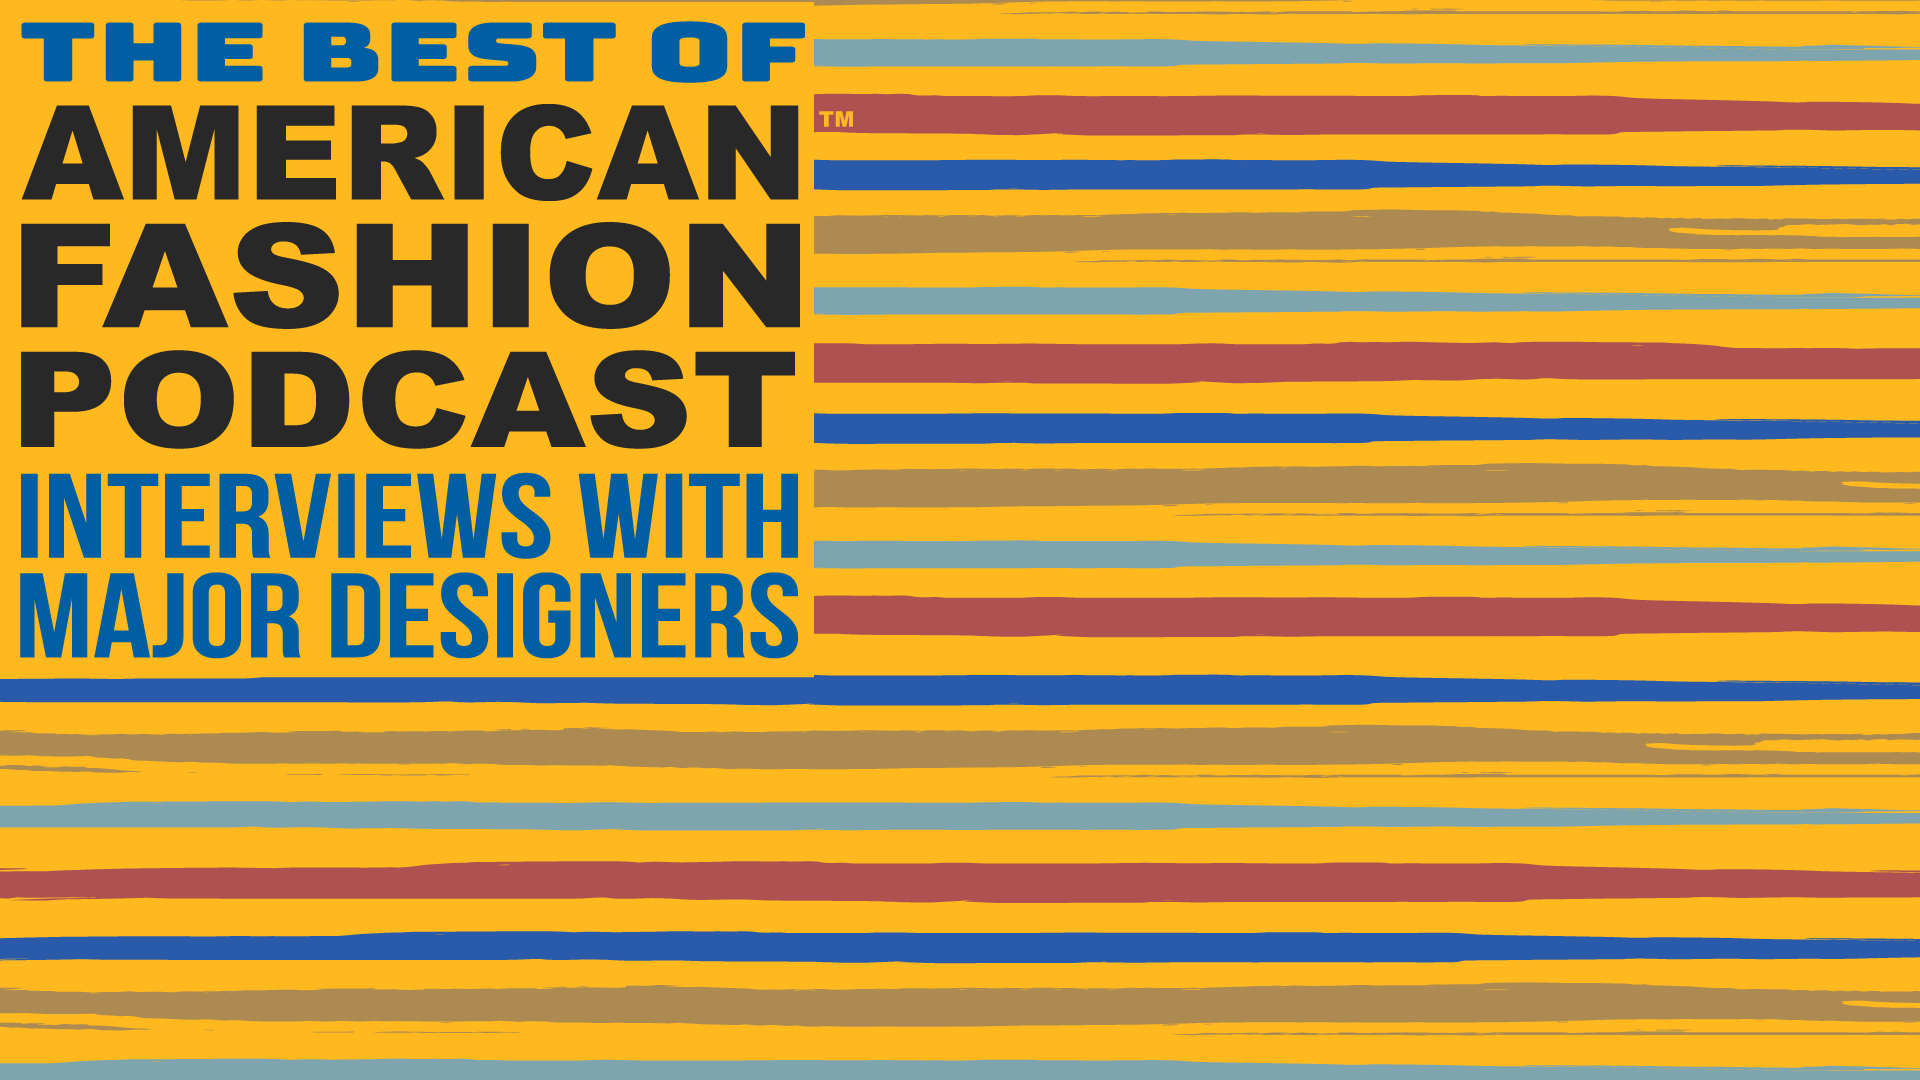 The Best of American Fashion Podcast - Major Designers